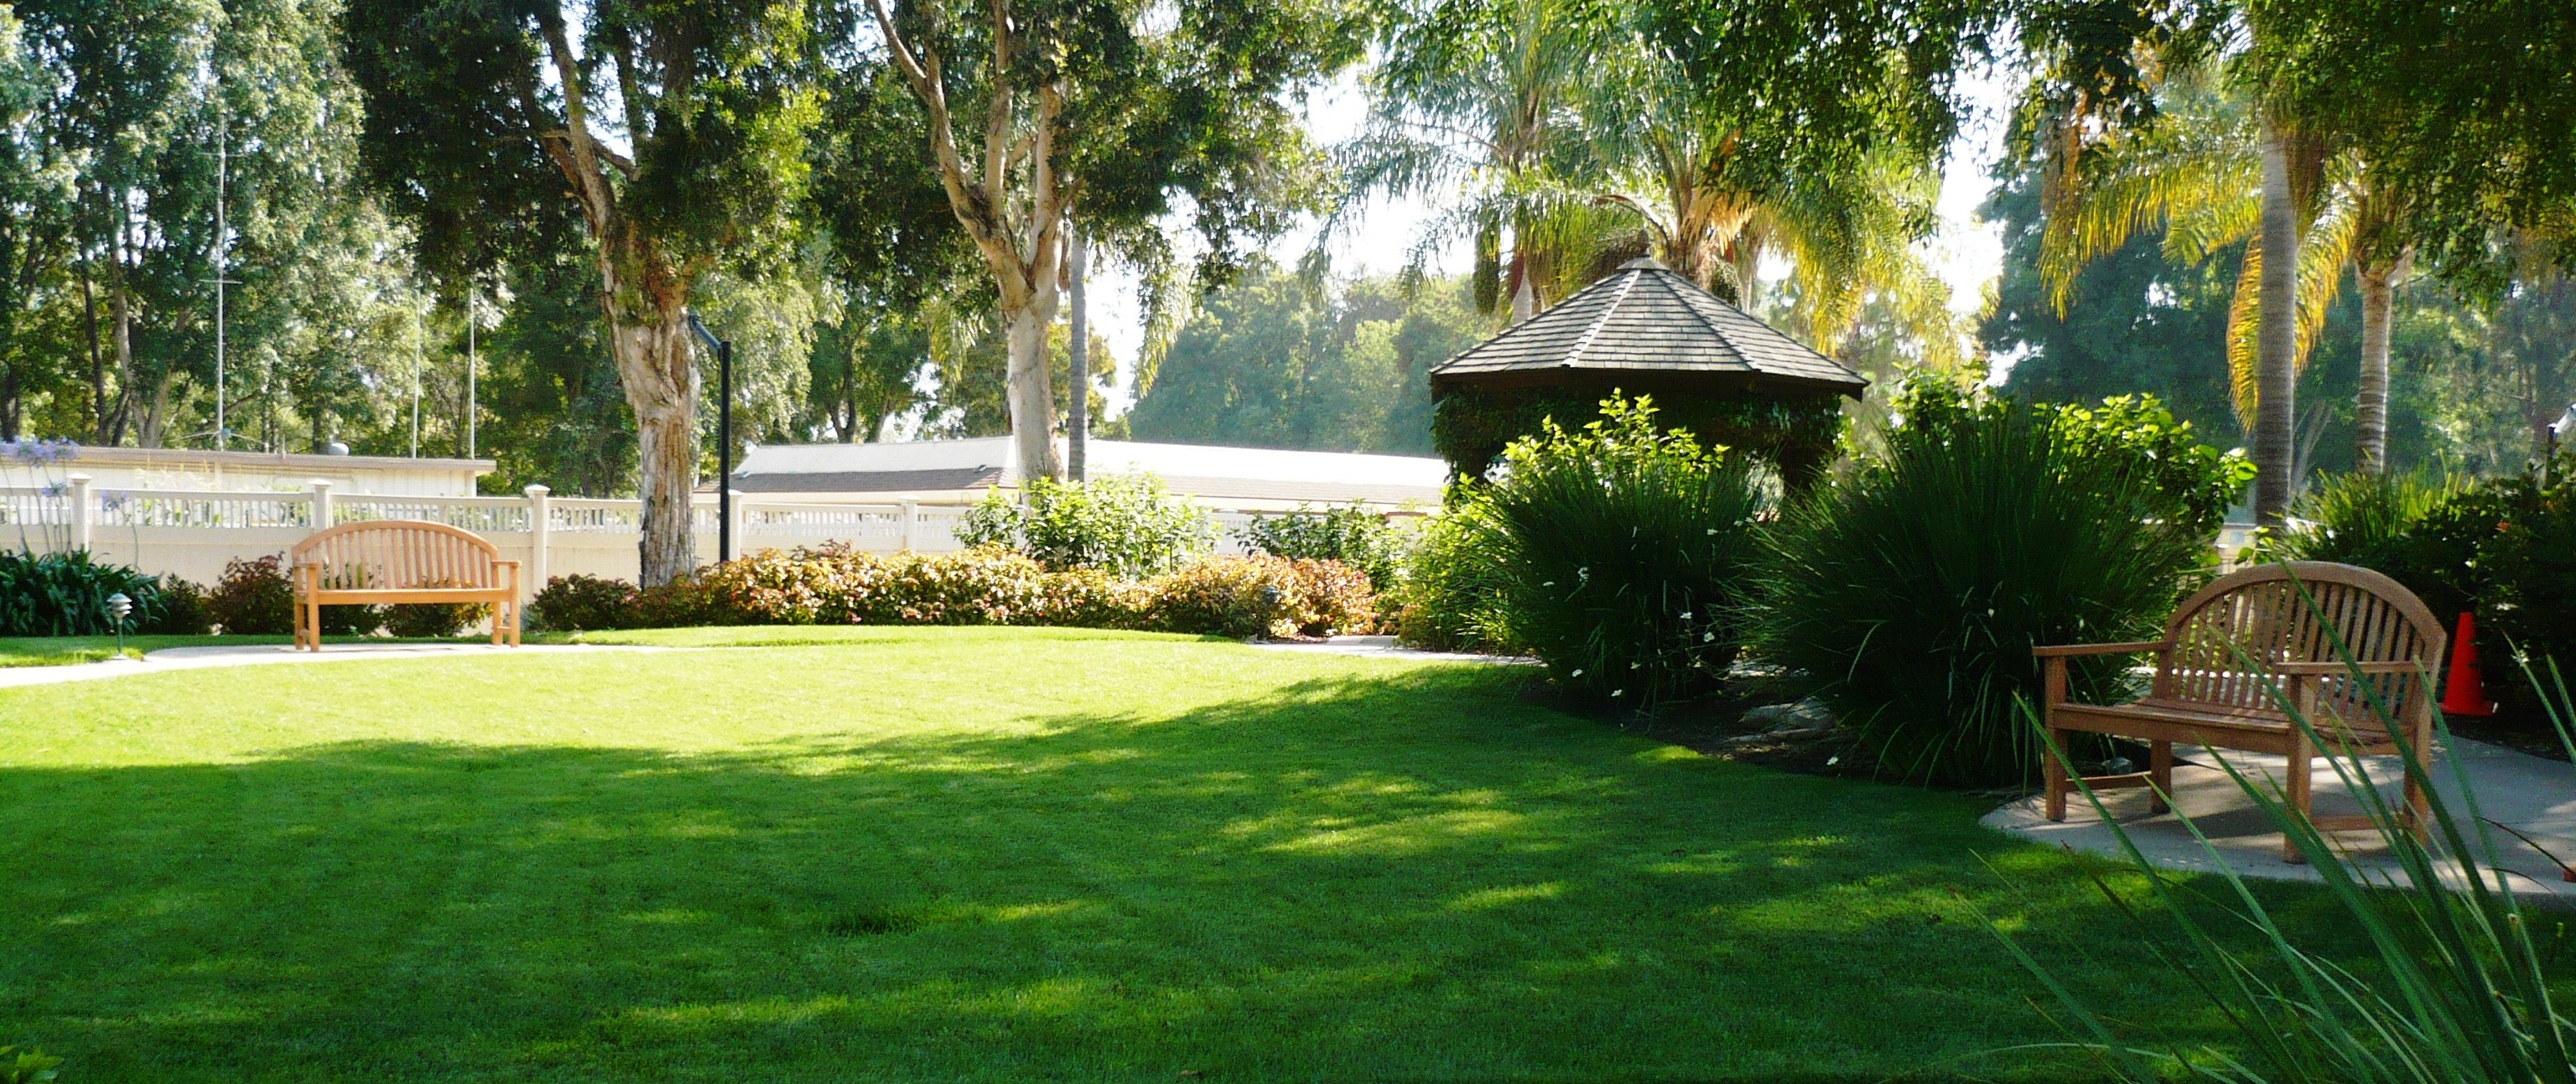 http://www.leisurevillagecamarillo.com/